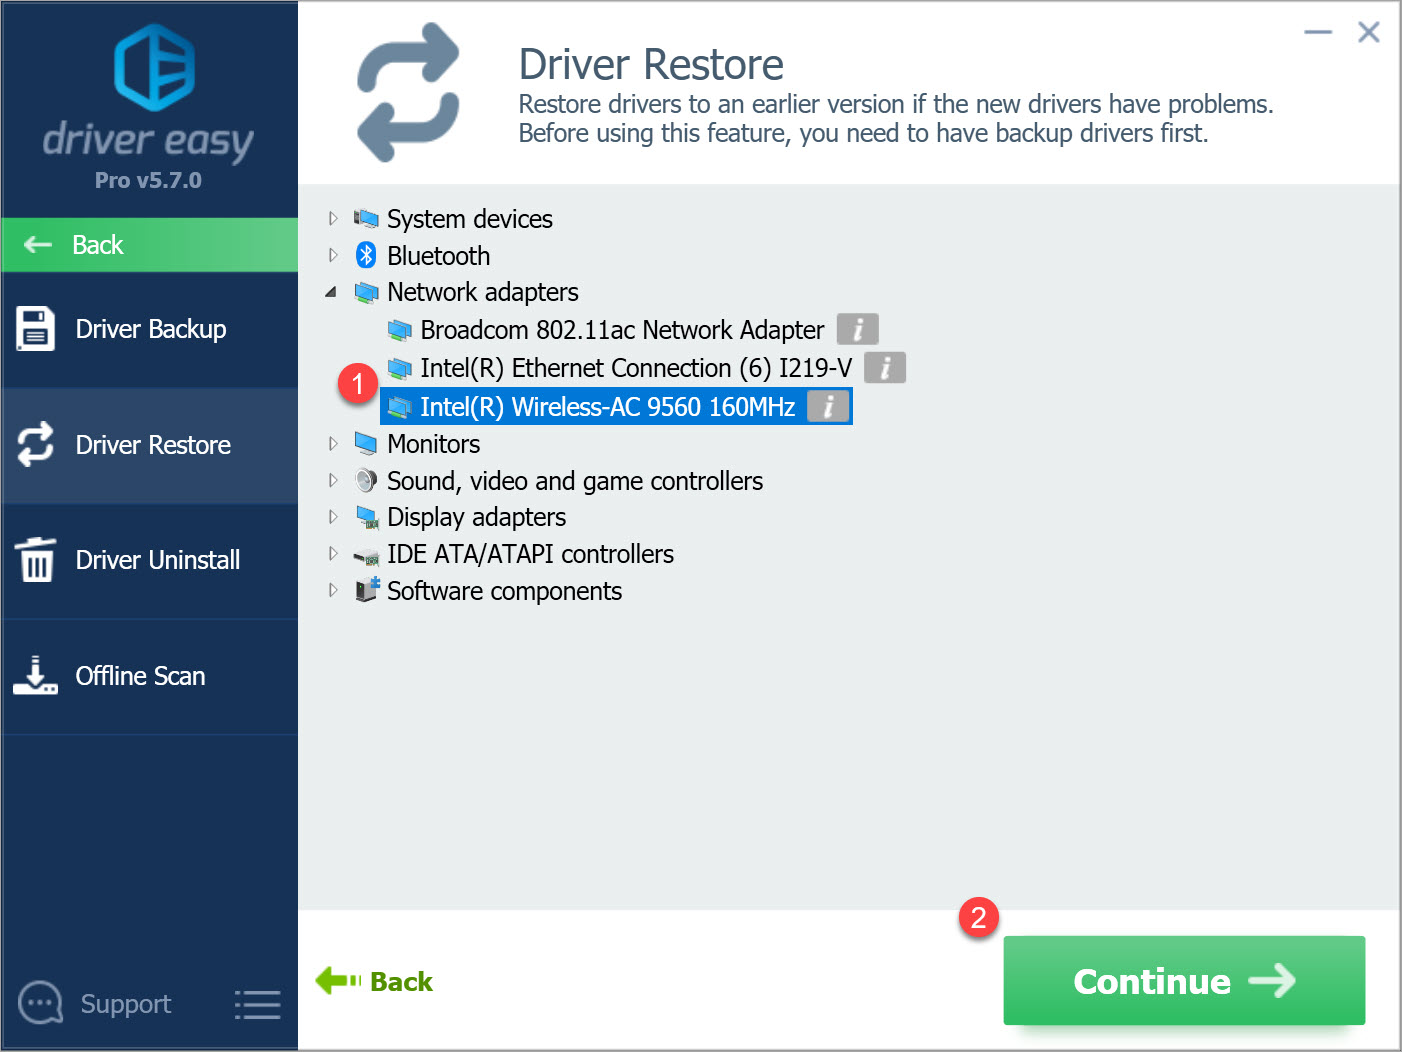 Driver Easy Pro select a device to restore the driver